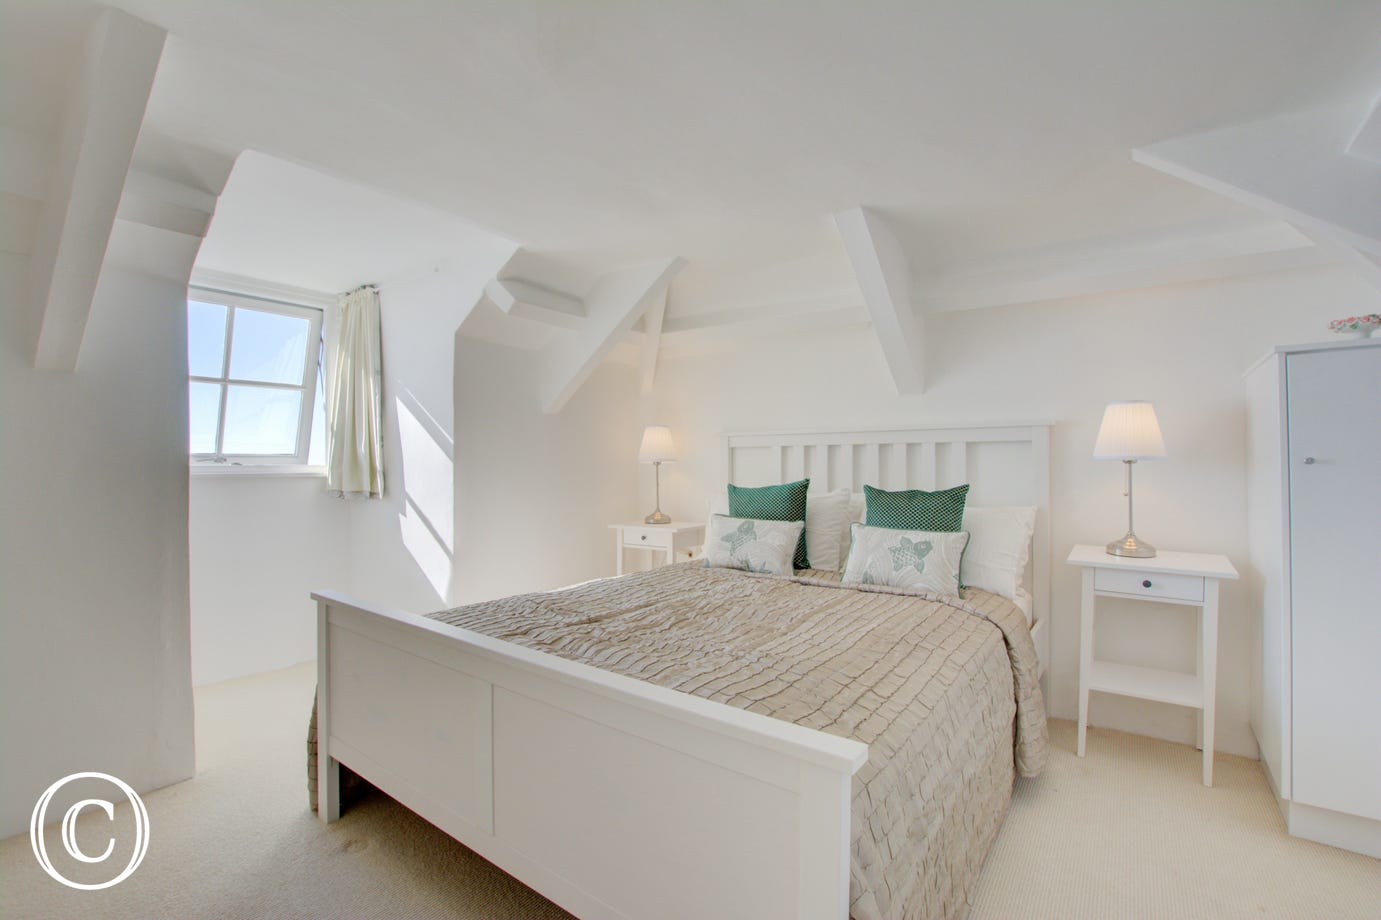 Bedroom 5 on top floor with sea views